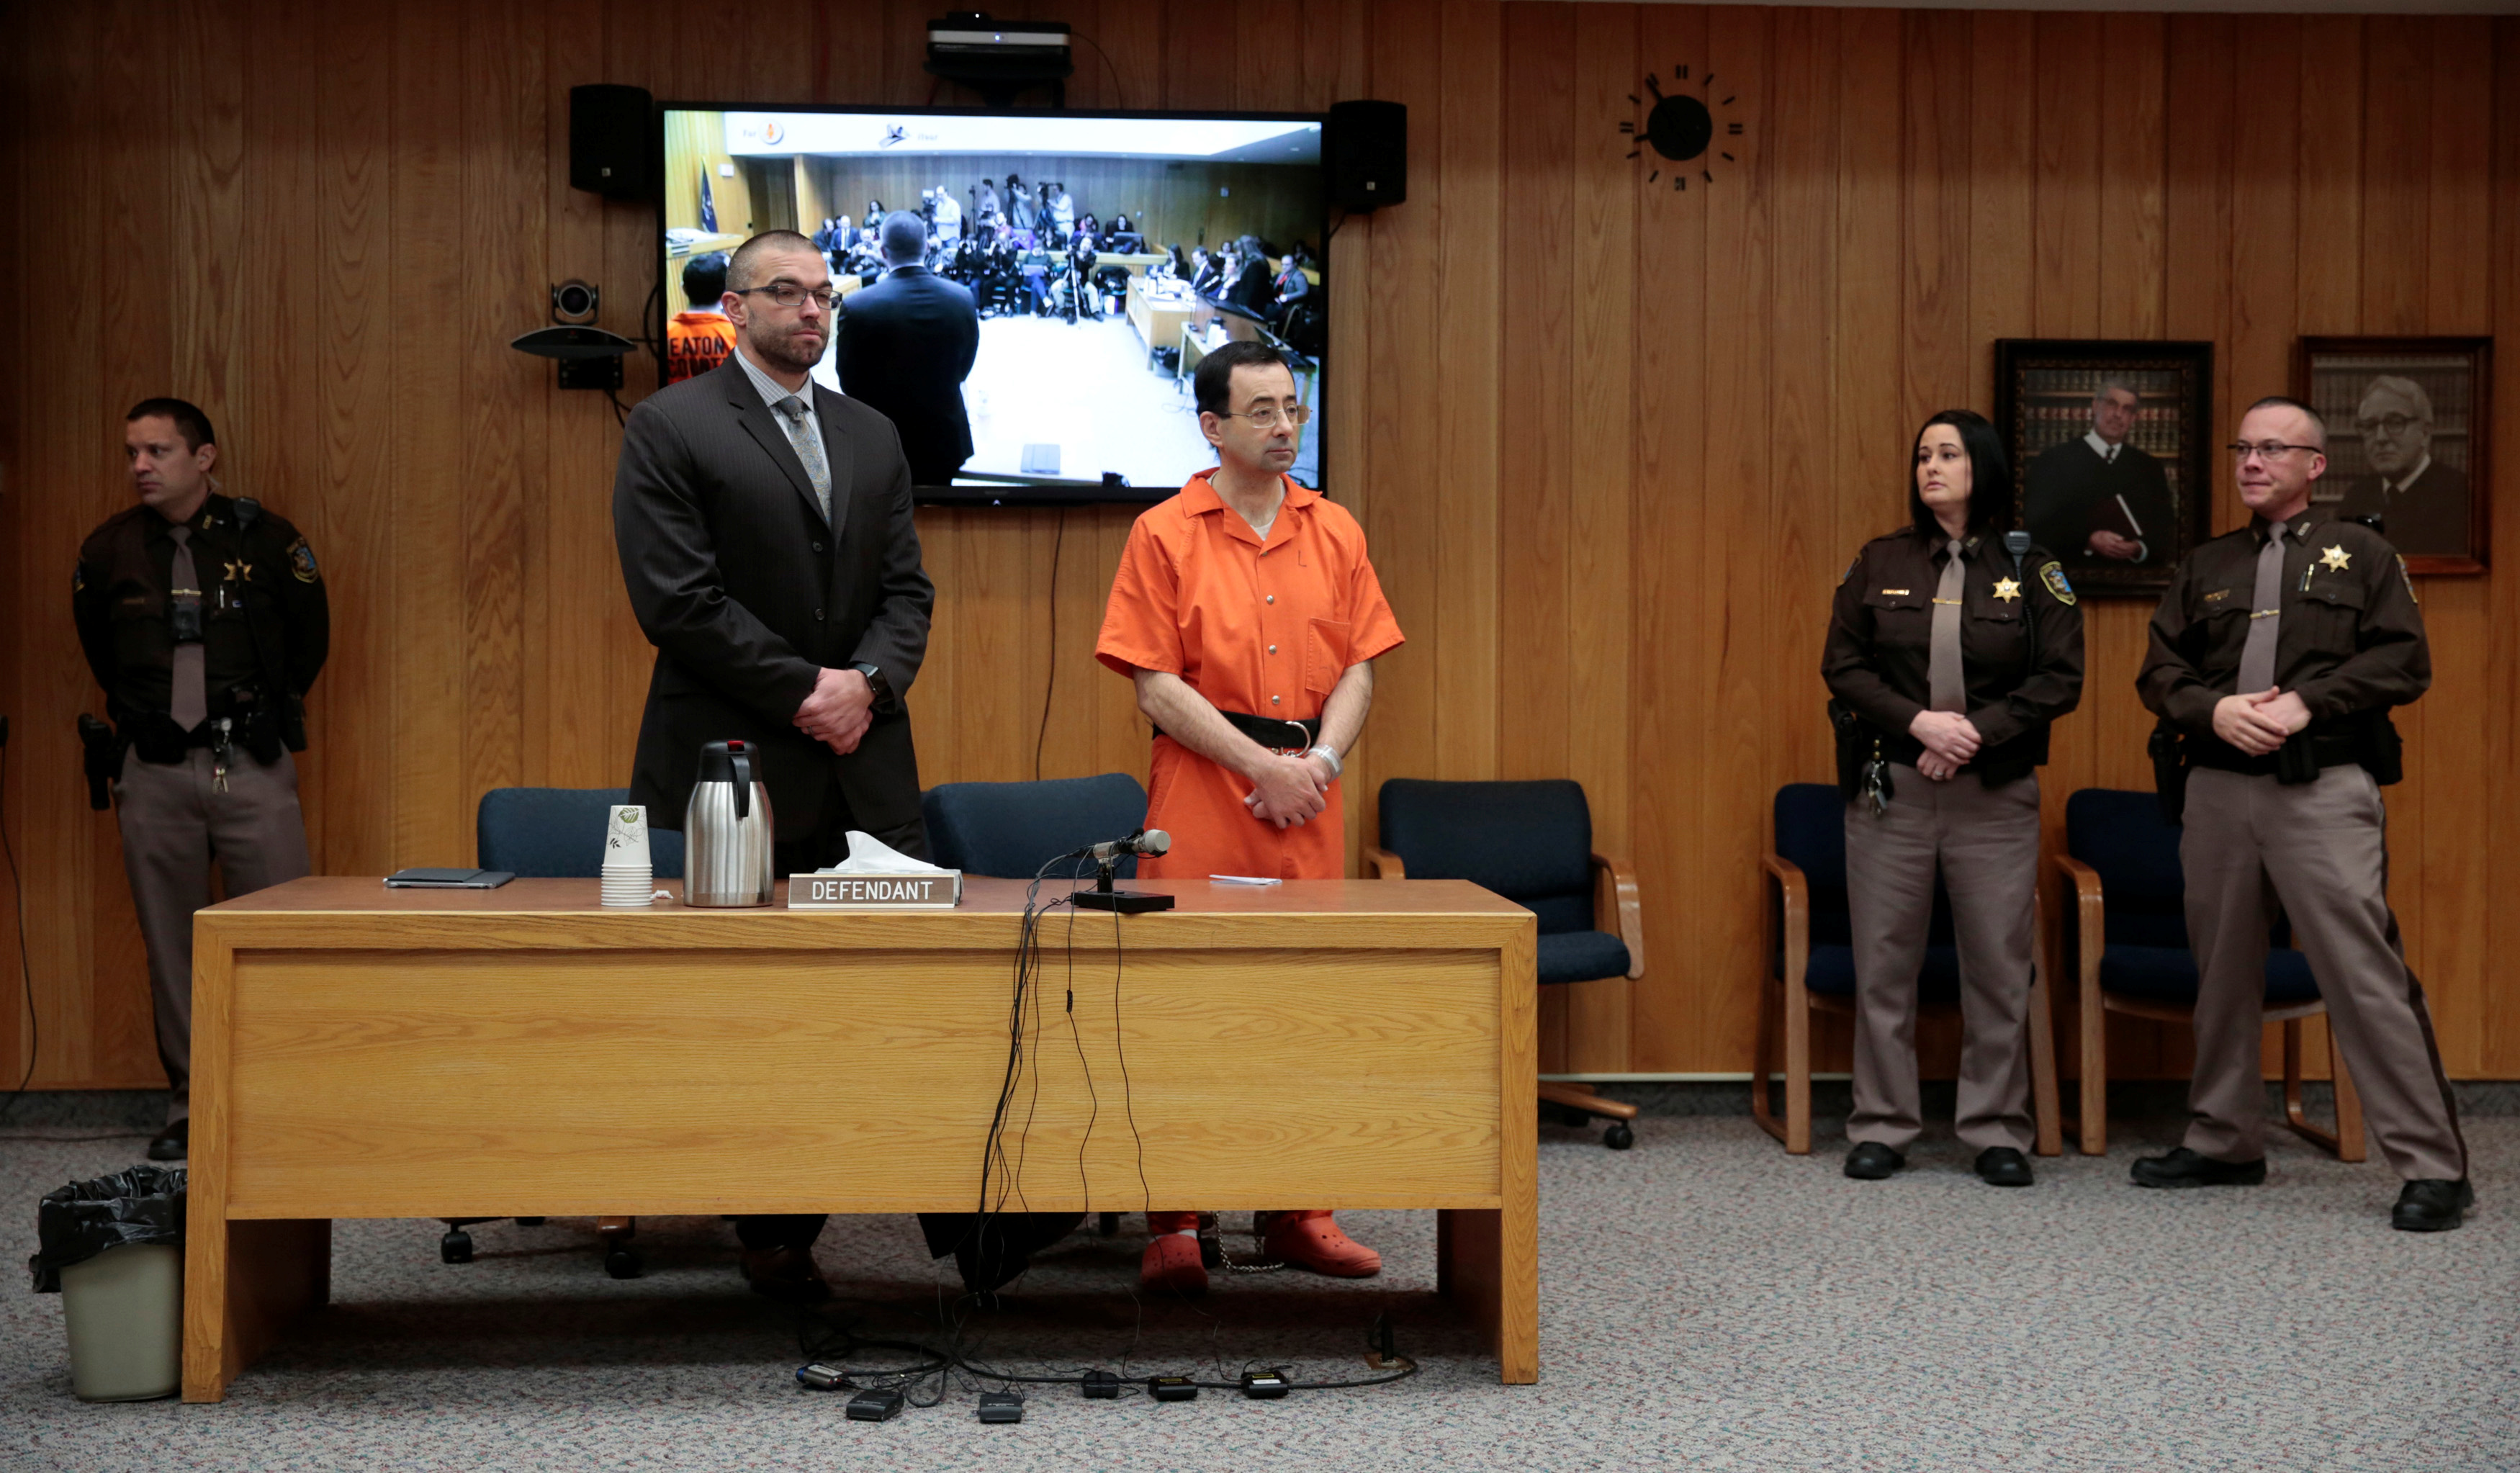 Larry Nassar, a former team USA Gymnastics doctor who pleaded guilty in November 2017 to sexual assault charges, and his defense attorney Matt Newburg stand during Nassar's sentencing hearing in the Eaton County Court in Charlotte, Michigan, U.S., February 5, 2018.  REUTERS/Rebecca Cook